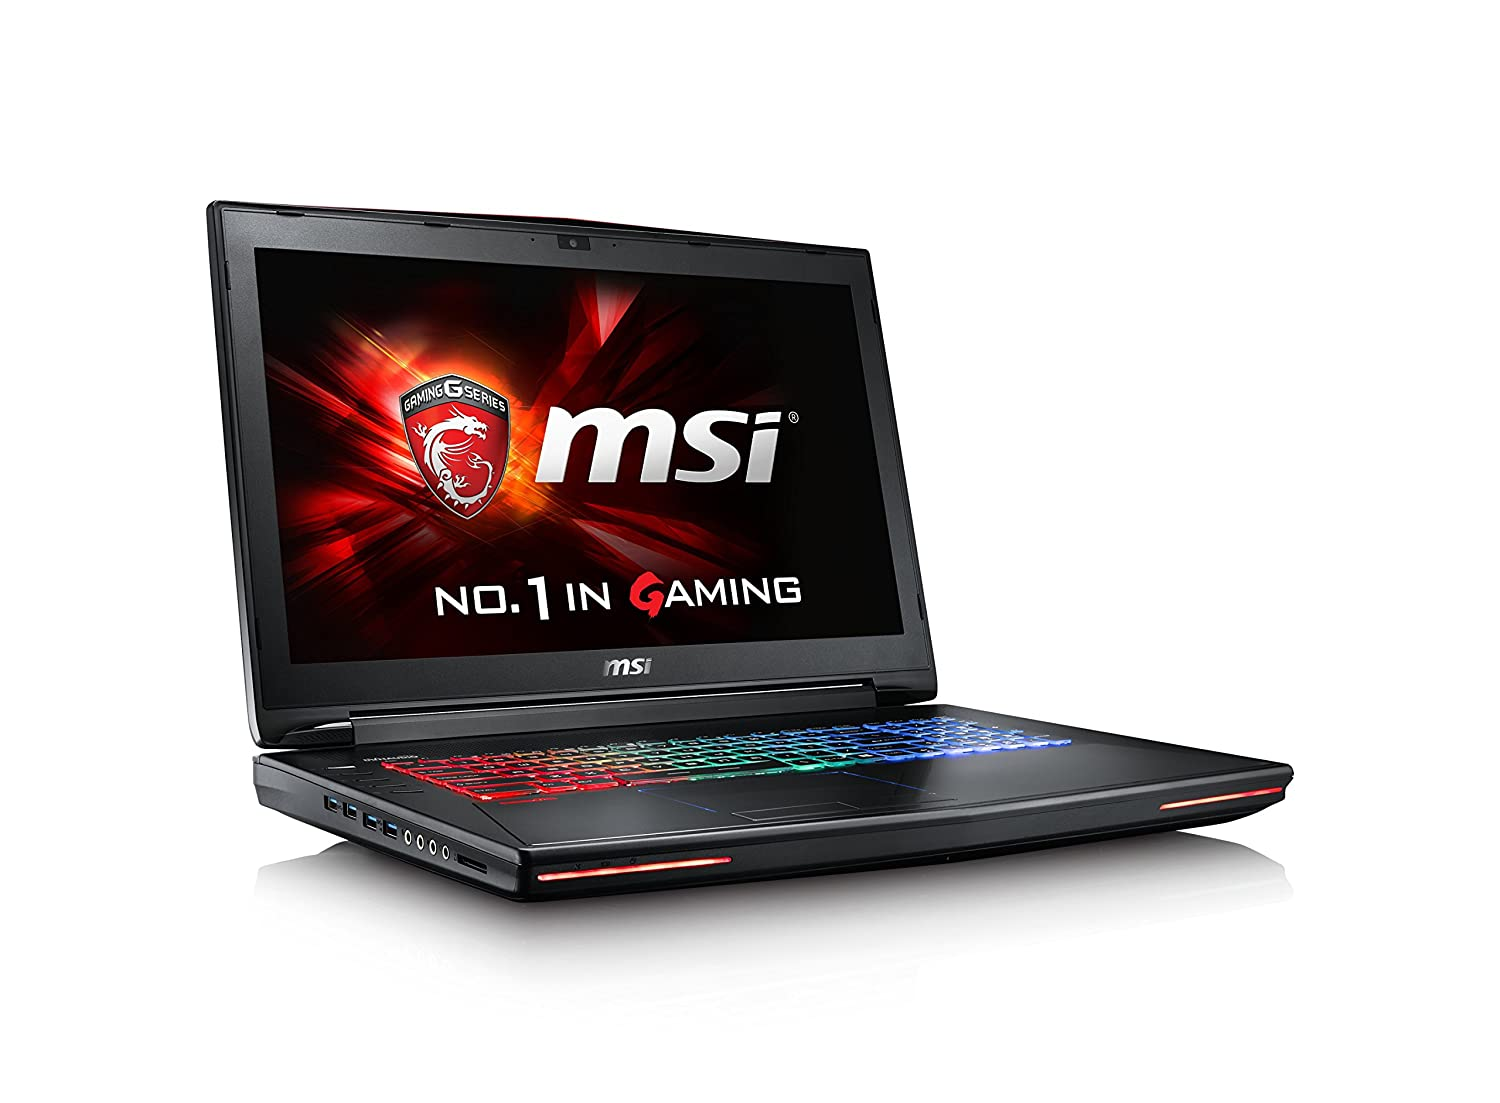 MSI GT72 DOMINATOR TREIBER WINDOWS 8